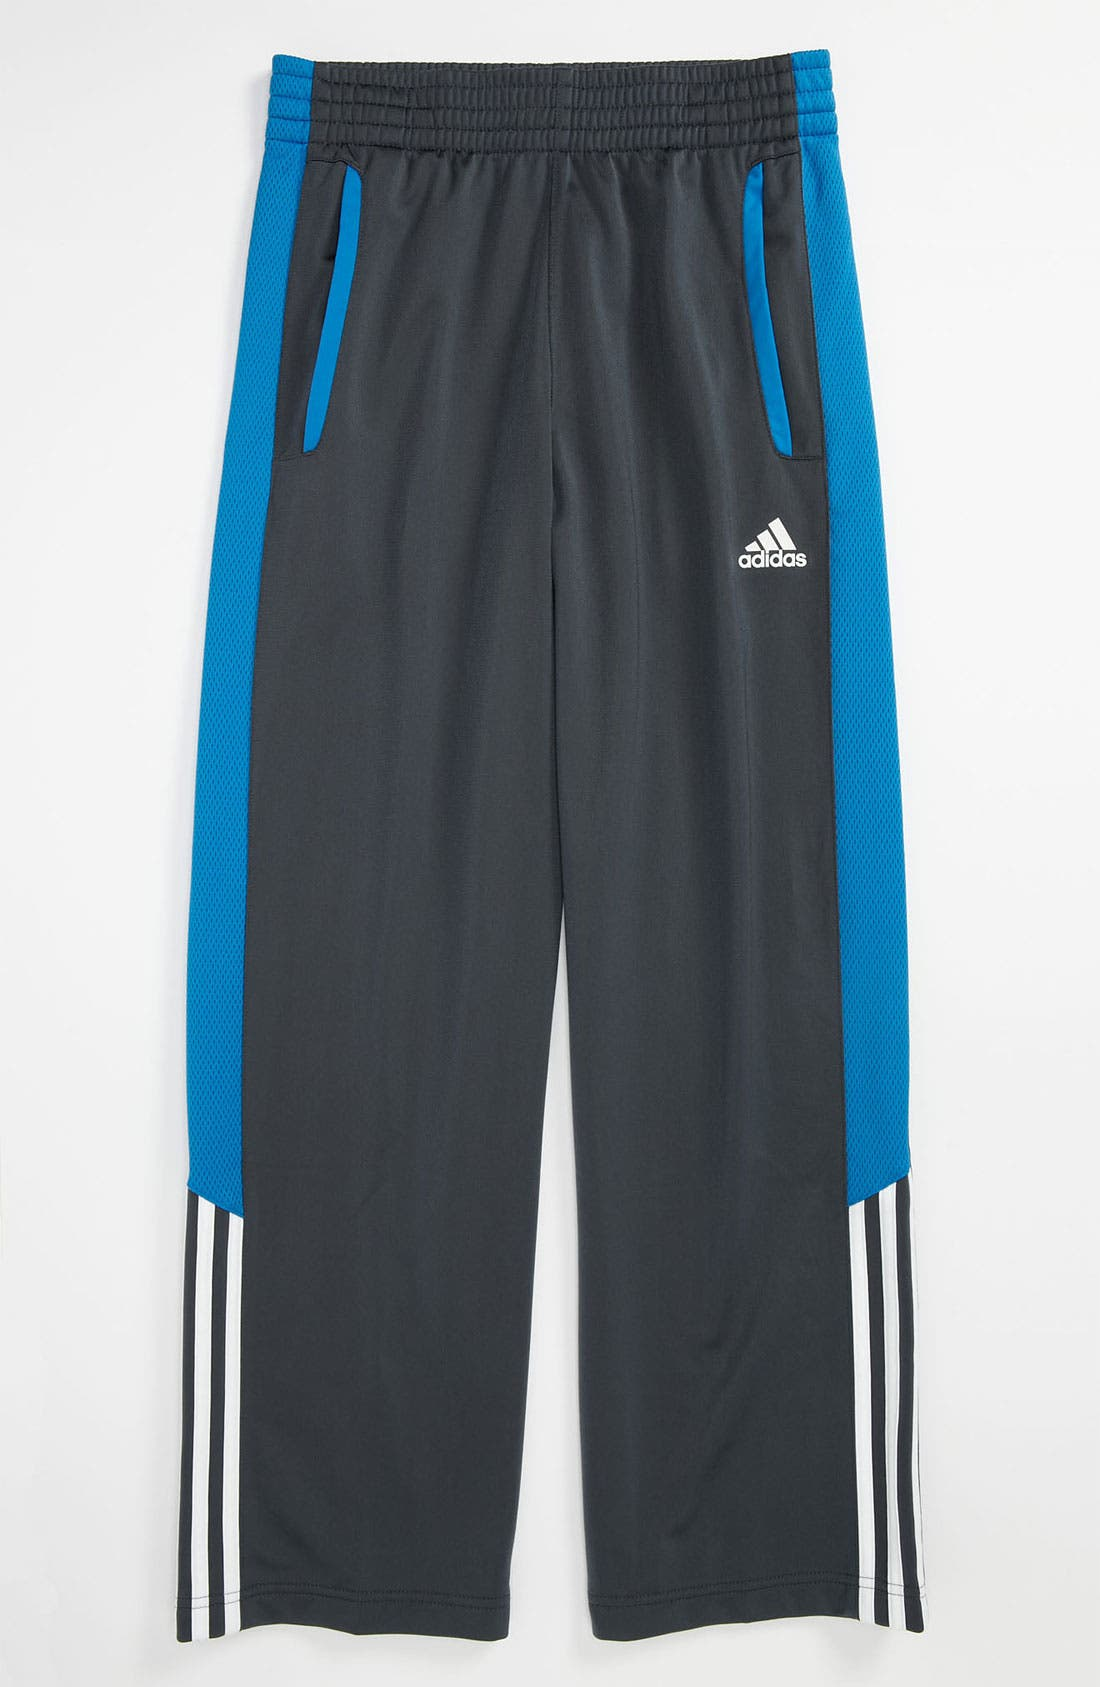 Main Image - adidas 'Pro Model' Pants (Big Boys)